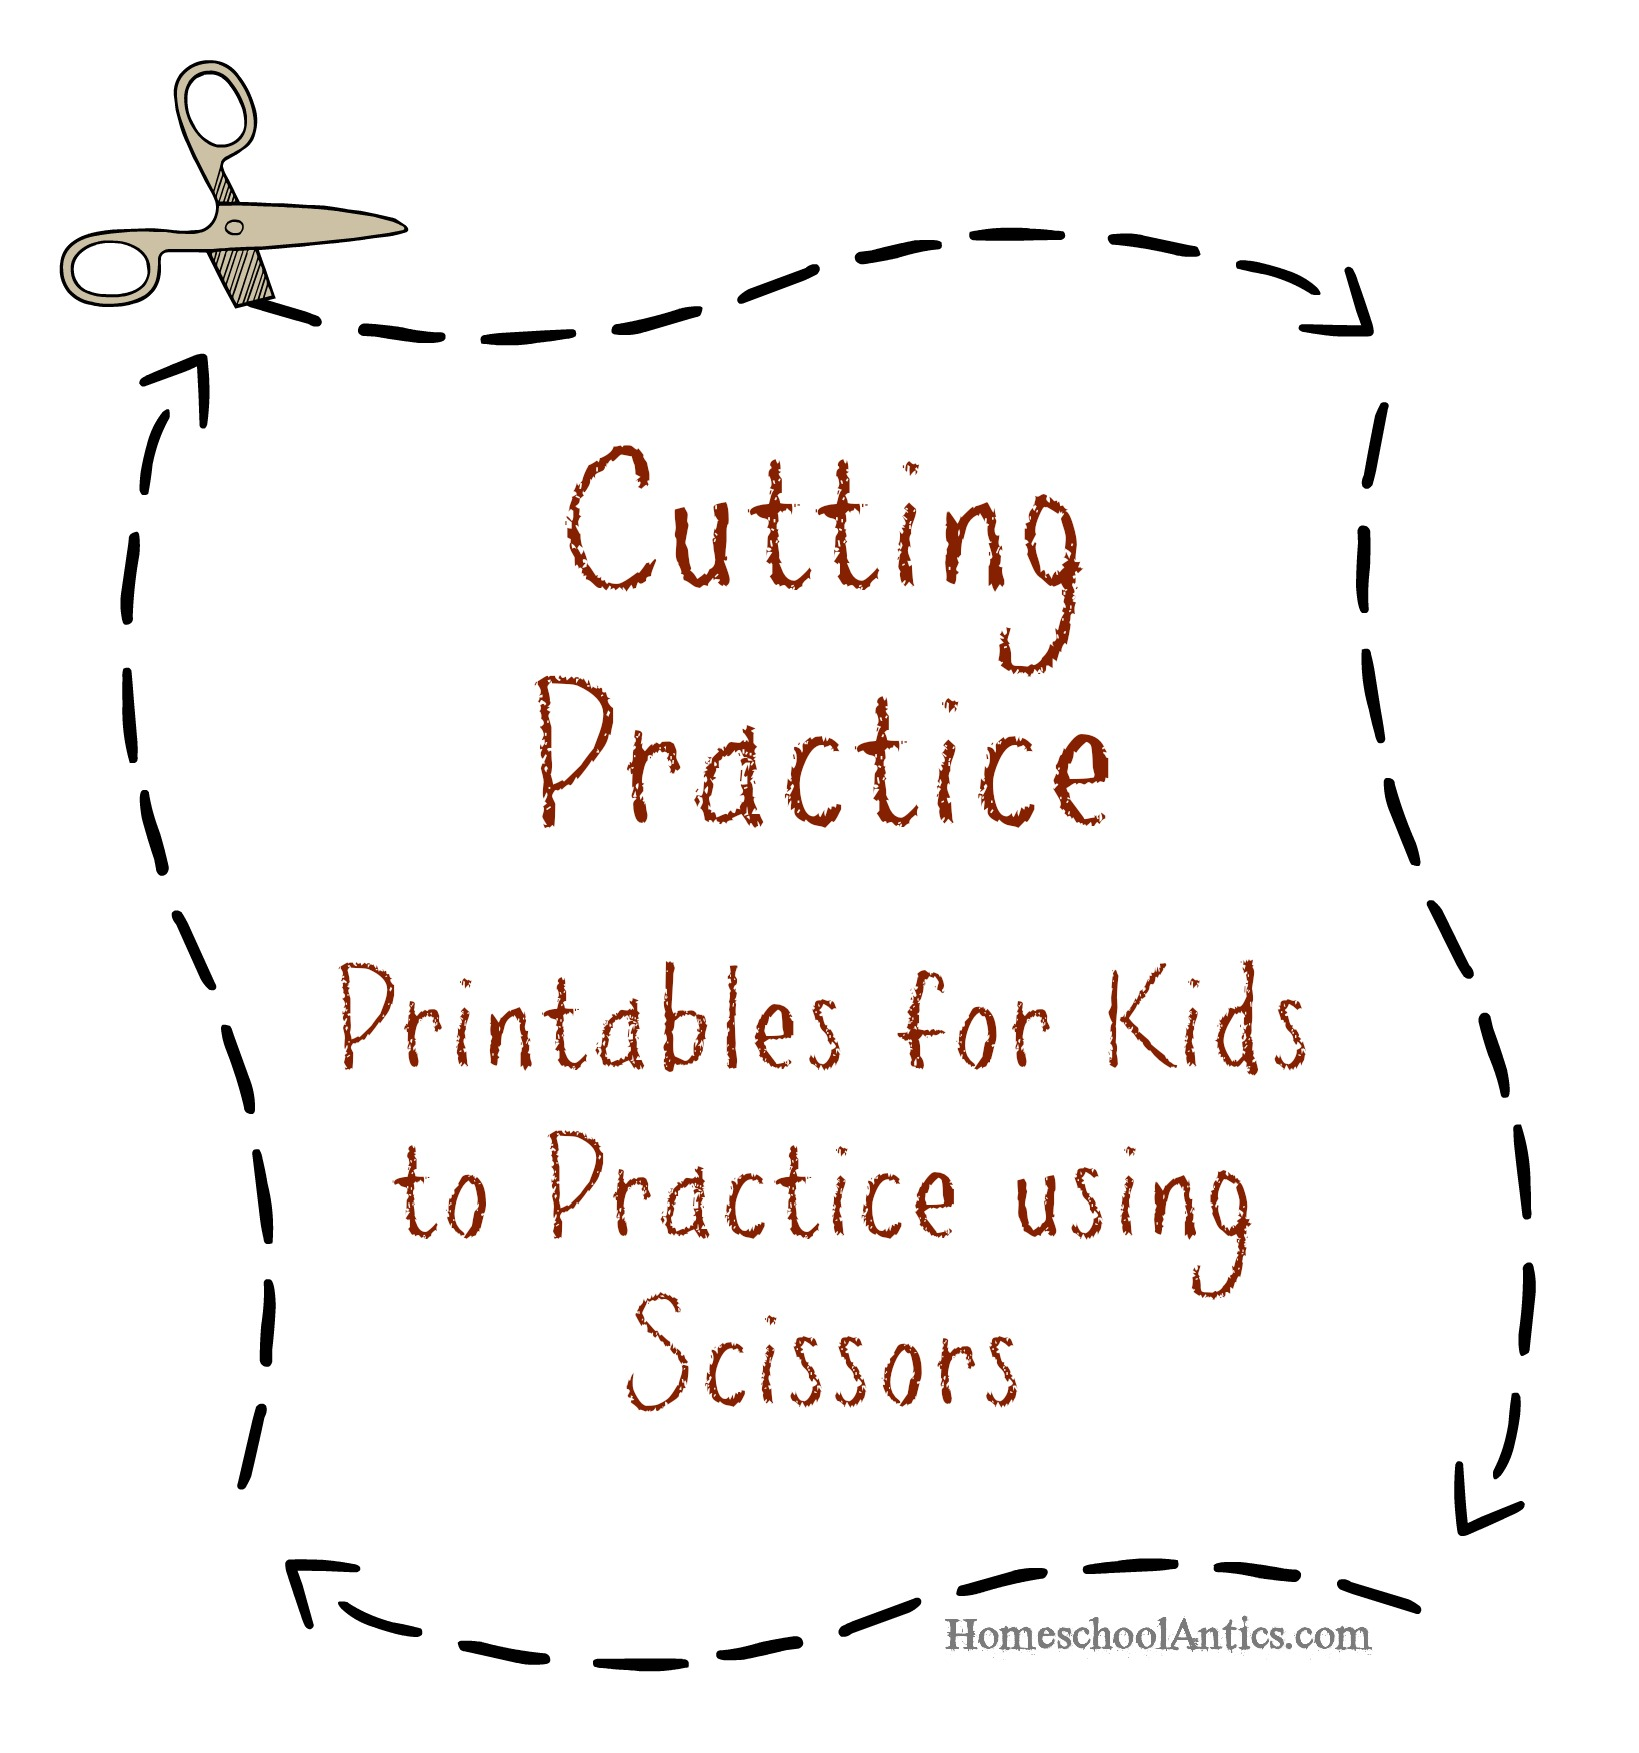 image relating to Cutting Practice Printable named Chopping Train Printables